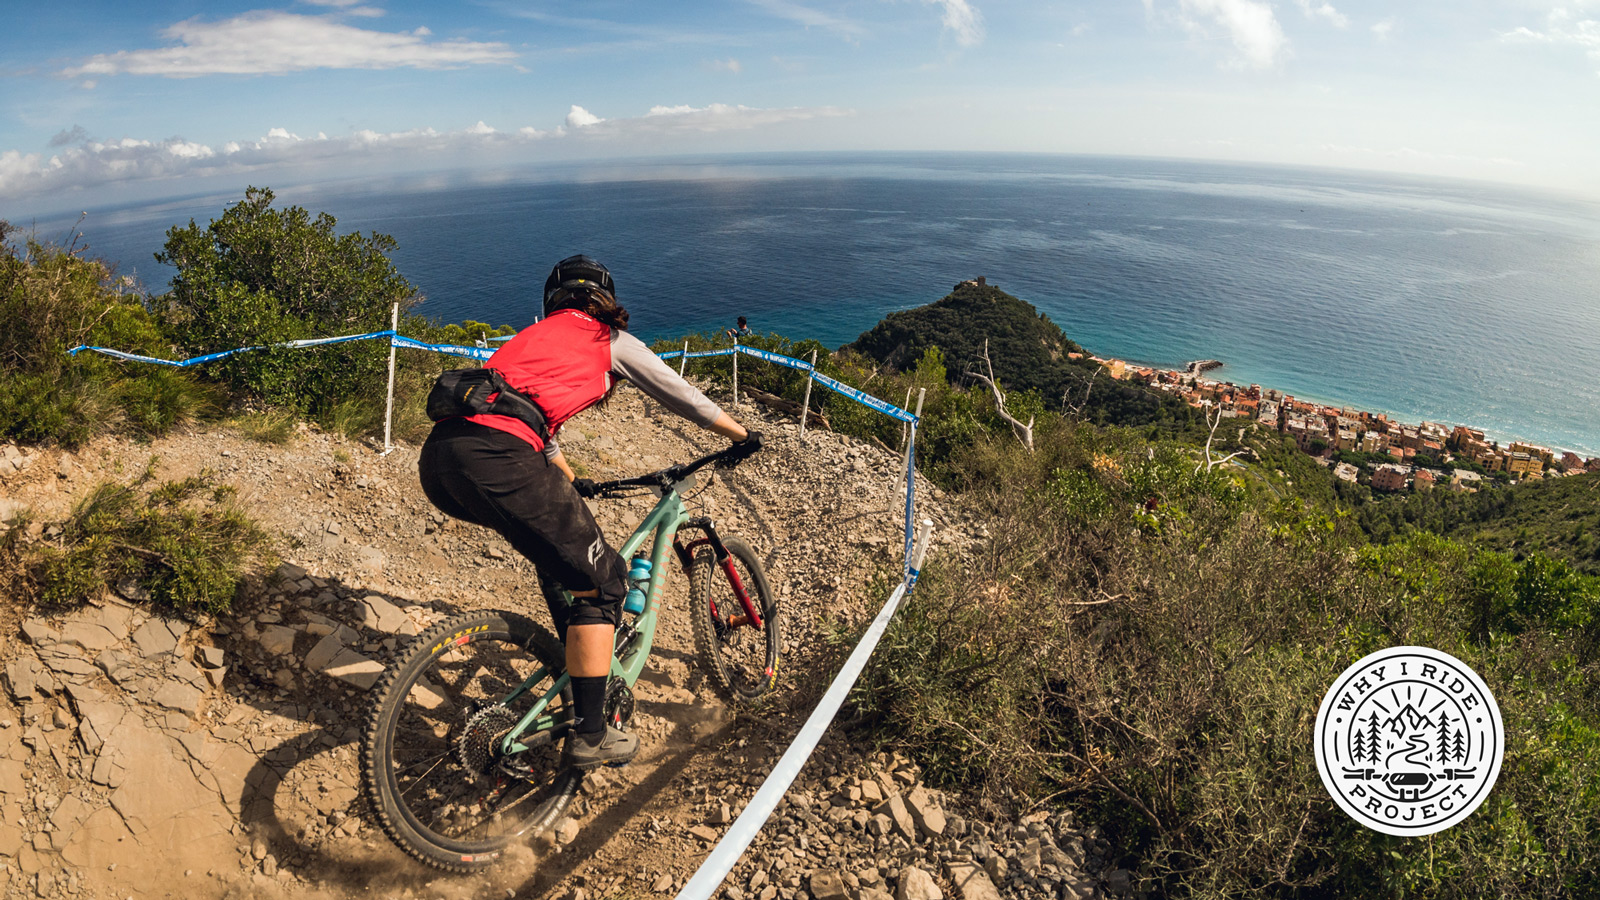 Porsha Murdock racing mountain bikes on the cliffs of Italy.